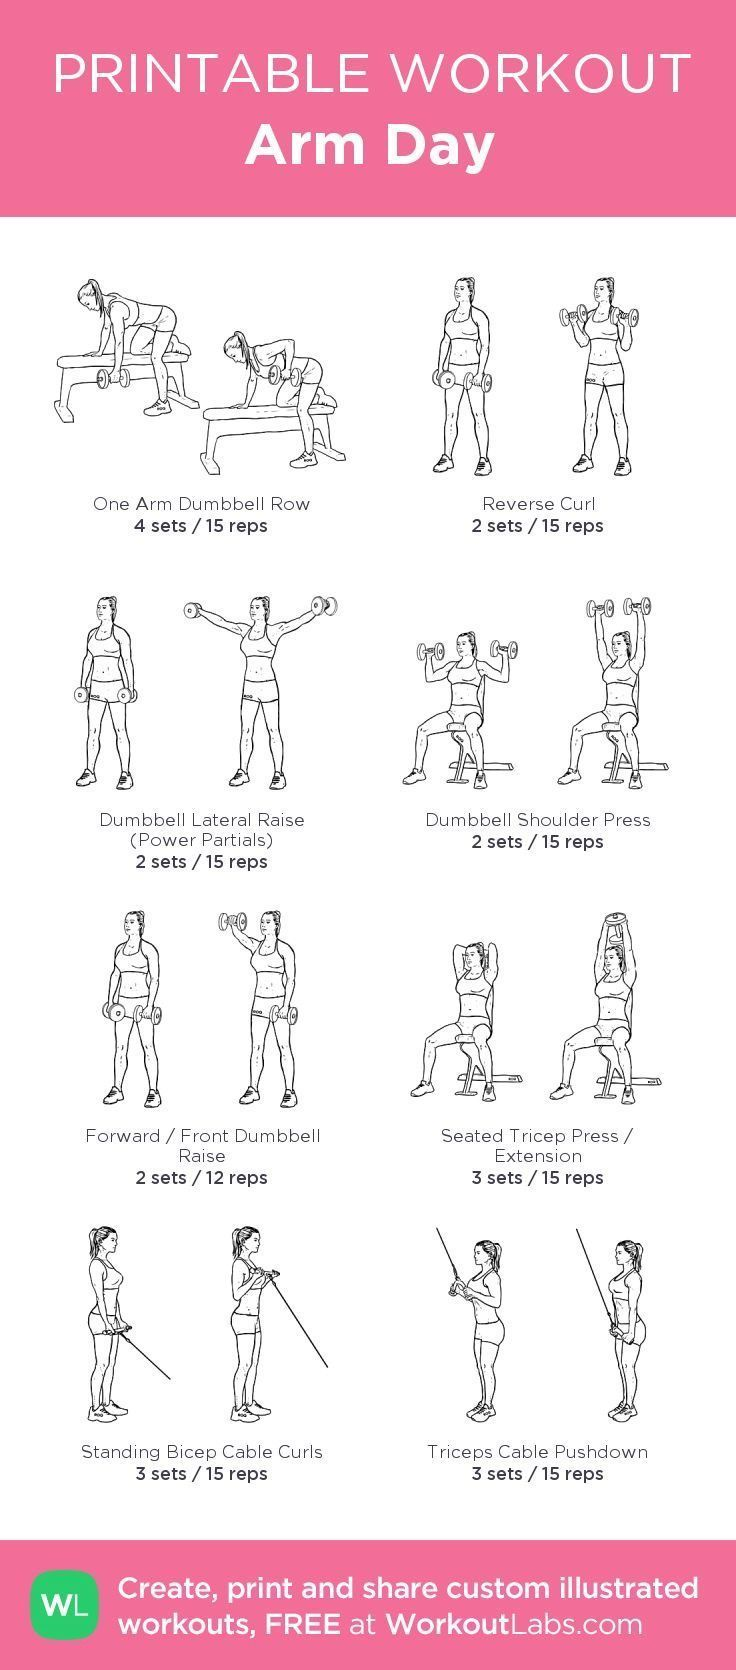 Arm Workout No Equipment Arm Workout With Weights Arm Workout Women Arm Workout Hanteln Arm Workout Tone Arms Workout Arm Workout Gym Arm Workout No Equipment